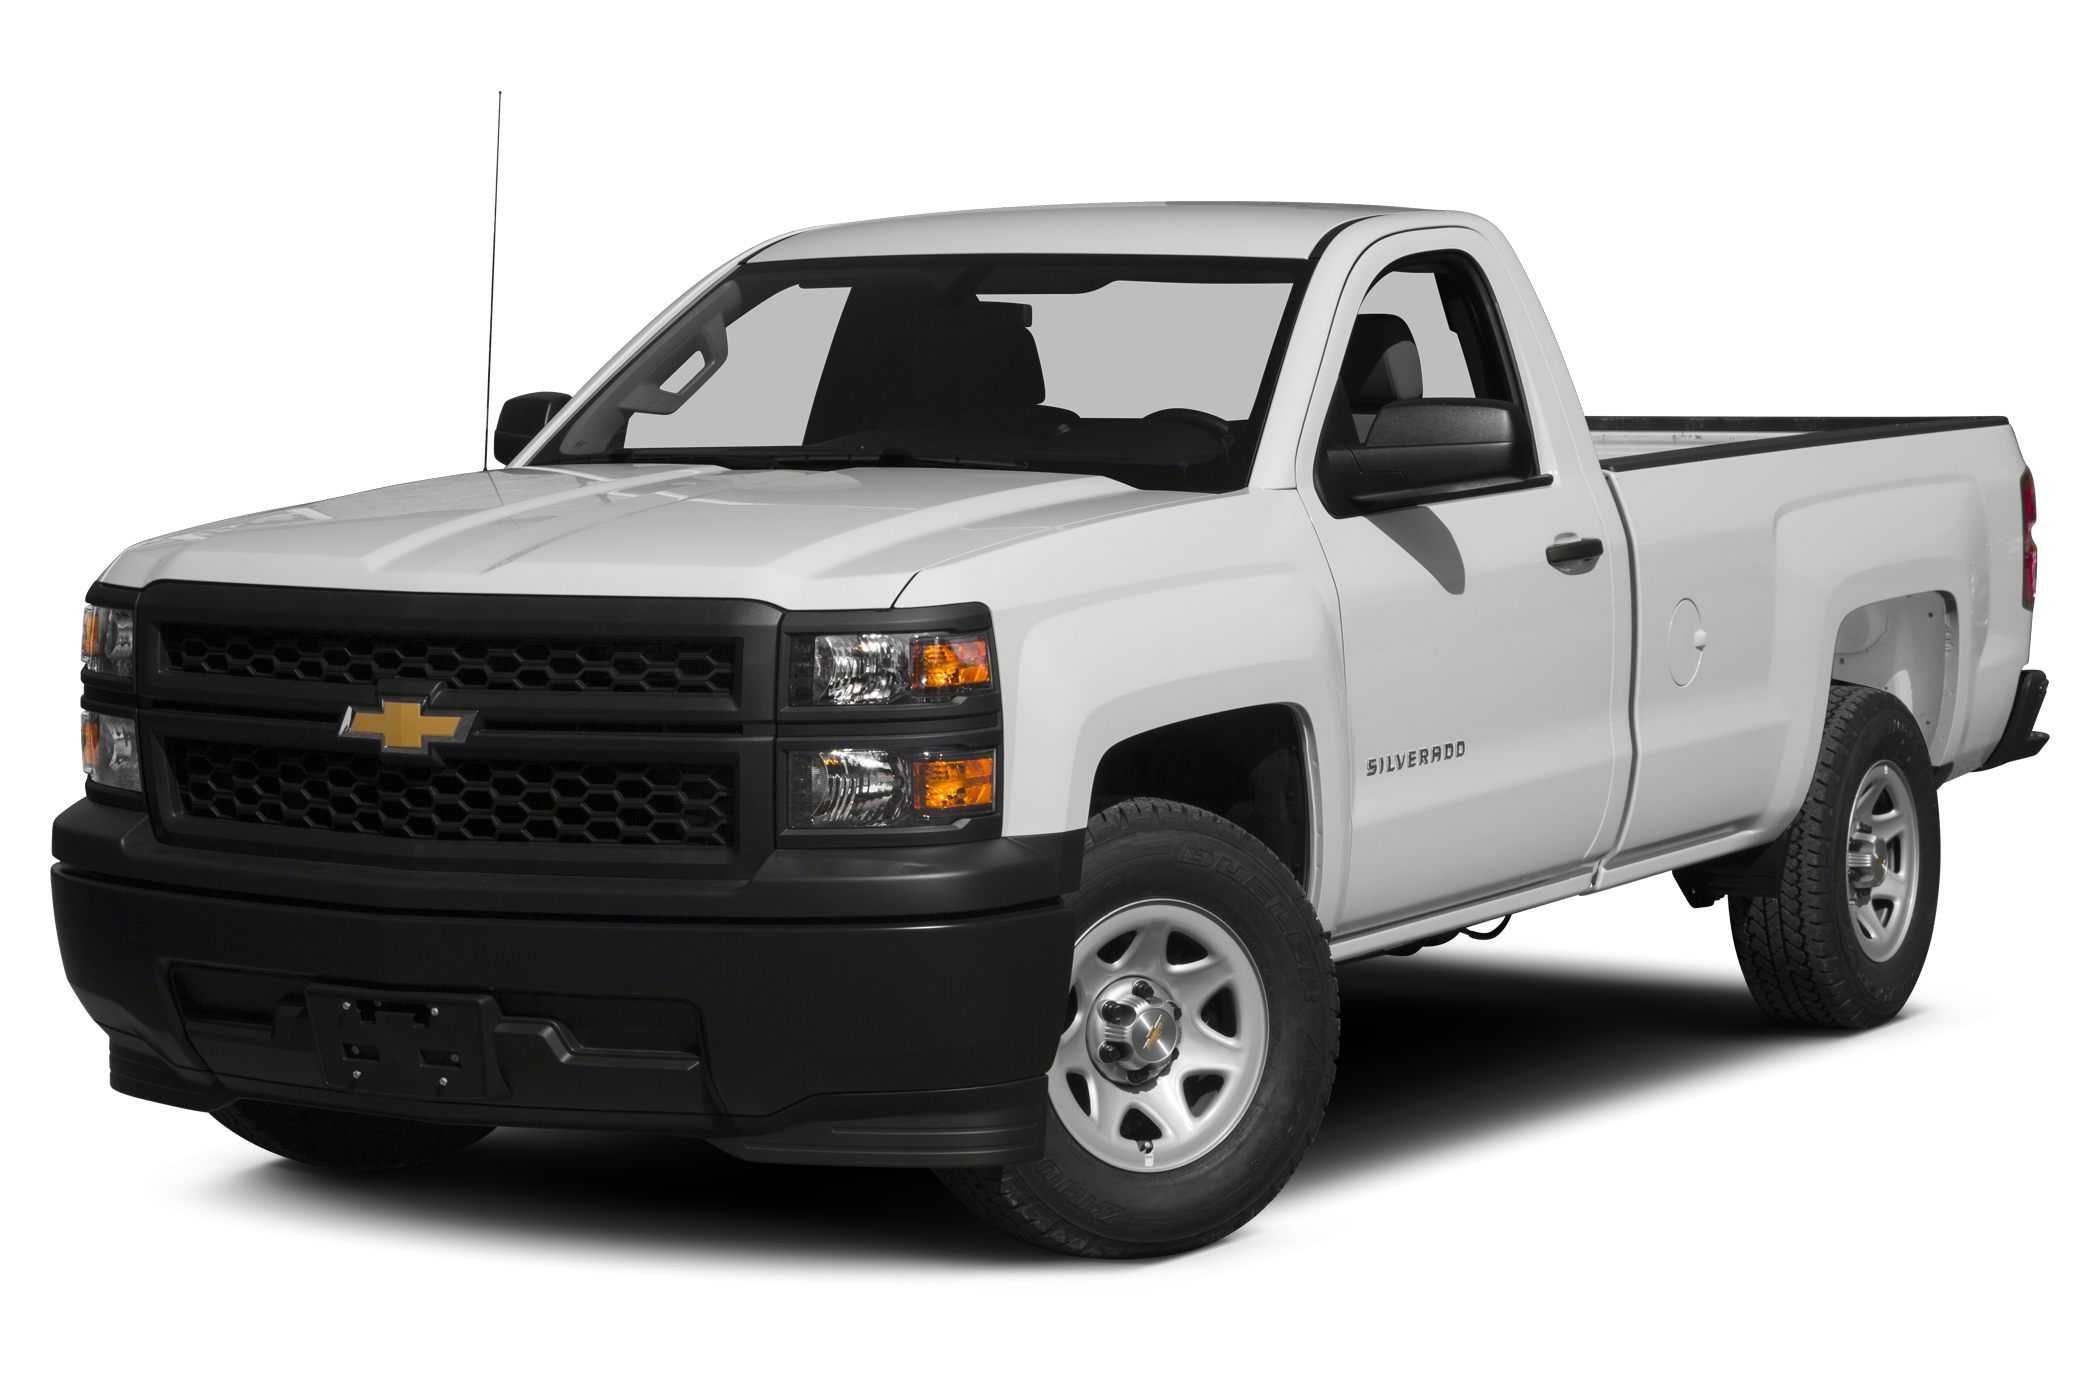 2015 Chevrolet Silverado 1500 1LT Extended Cab Pickup for sale in Hawthorne for $43,115 with 0 miles.